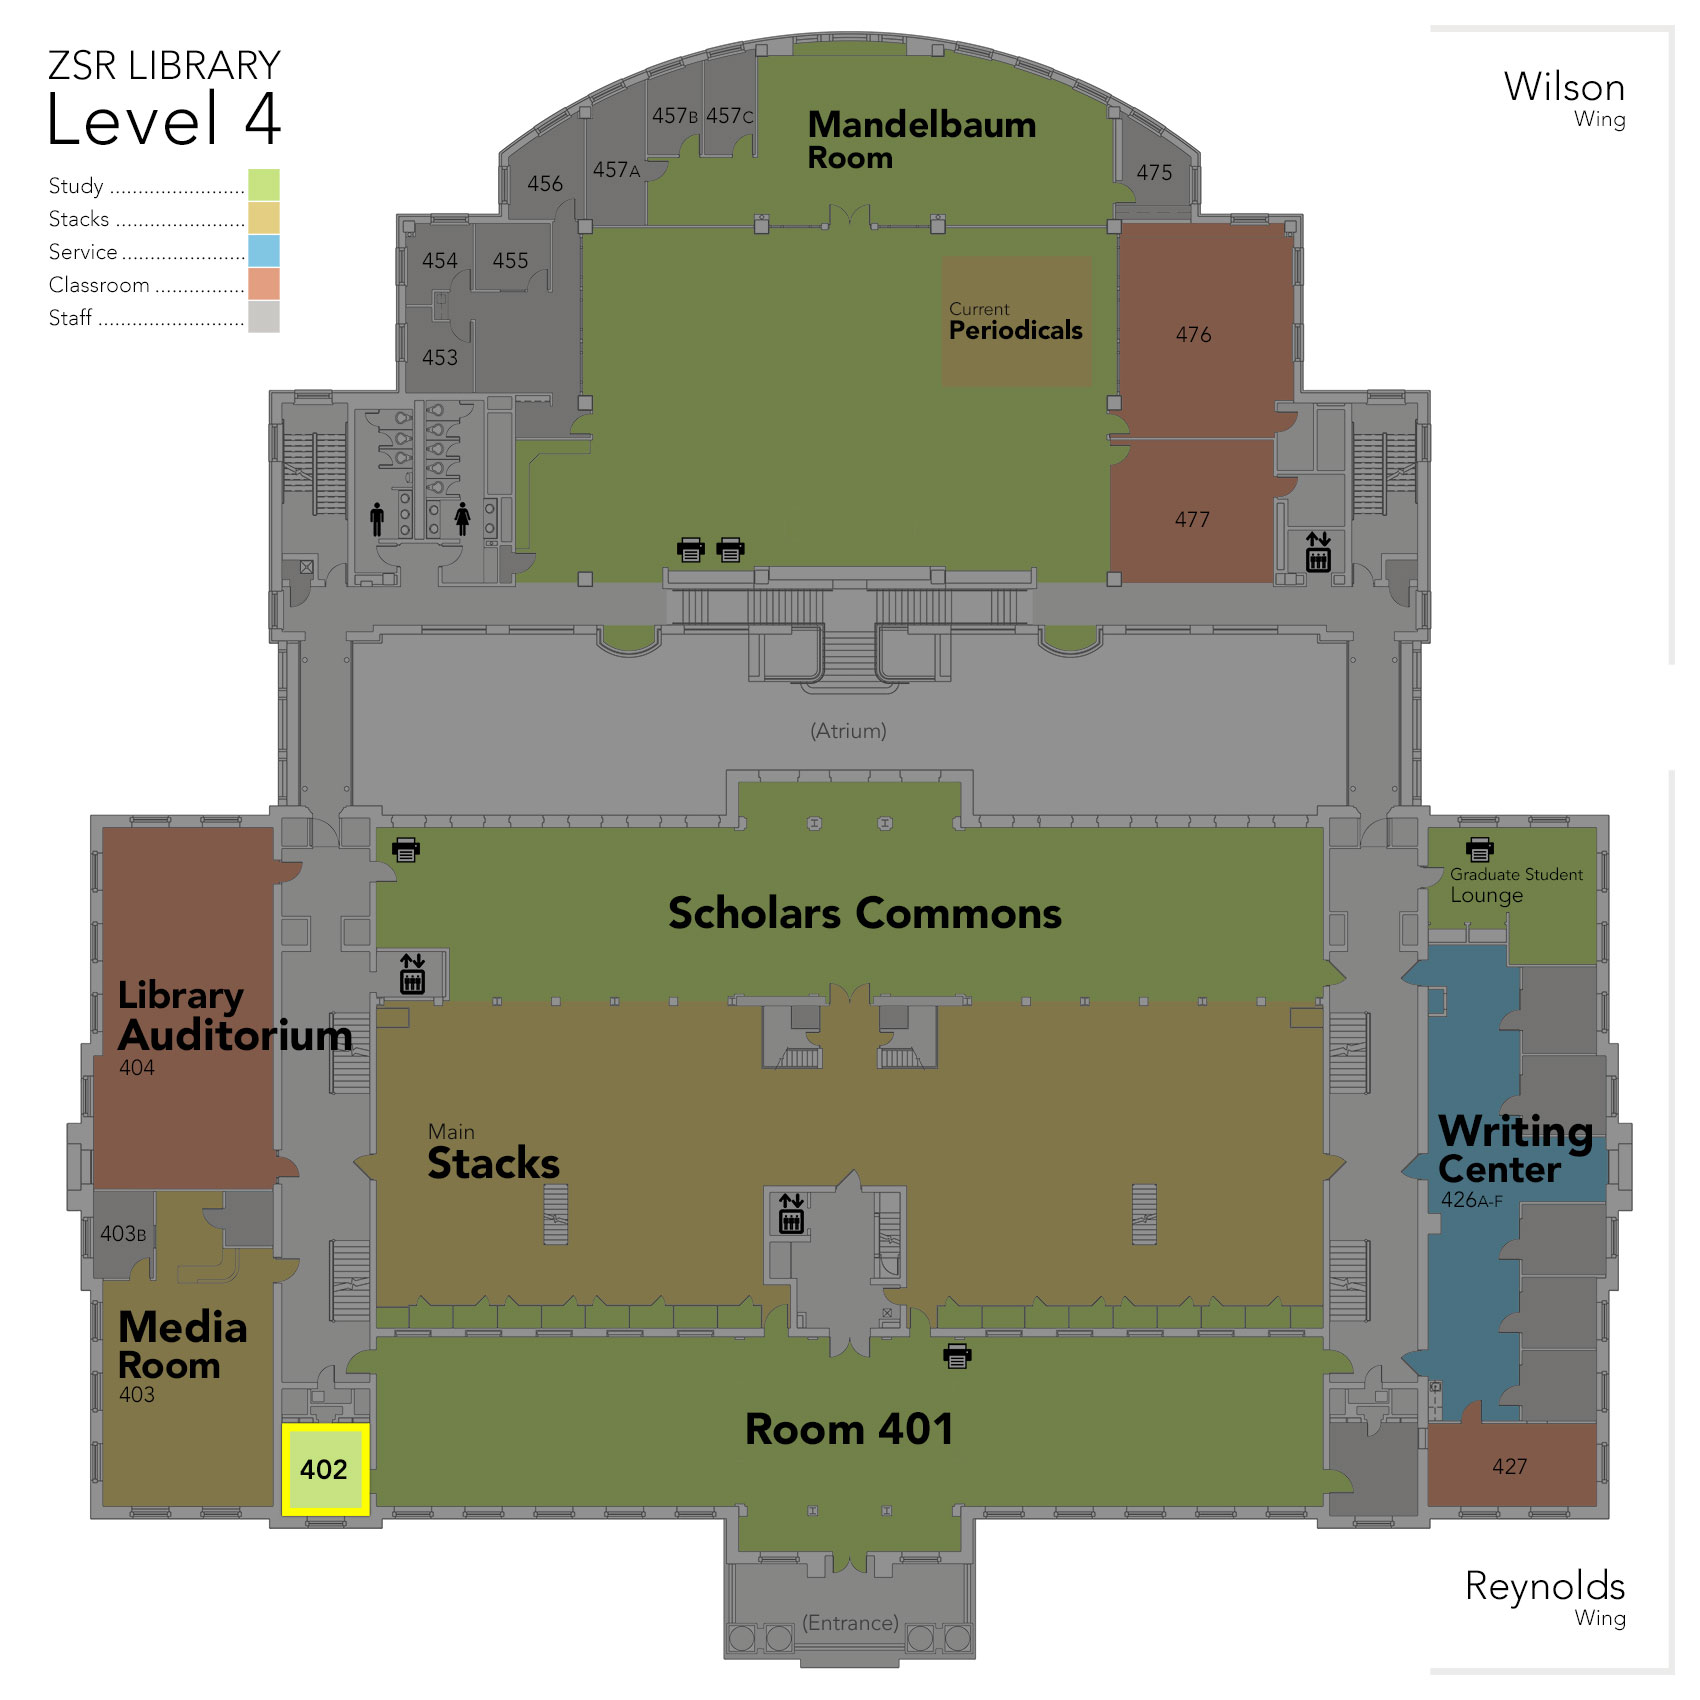 Level 4 Study Room 402 map